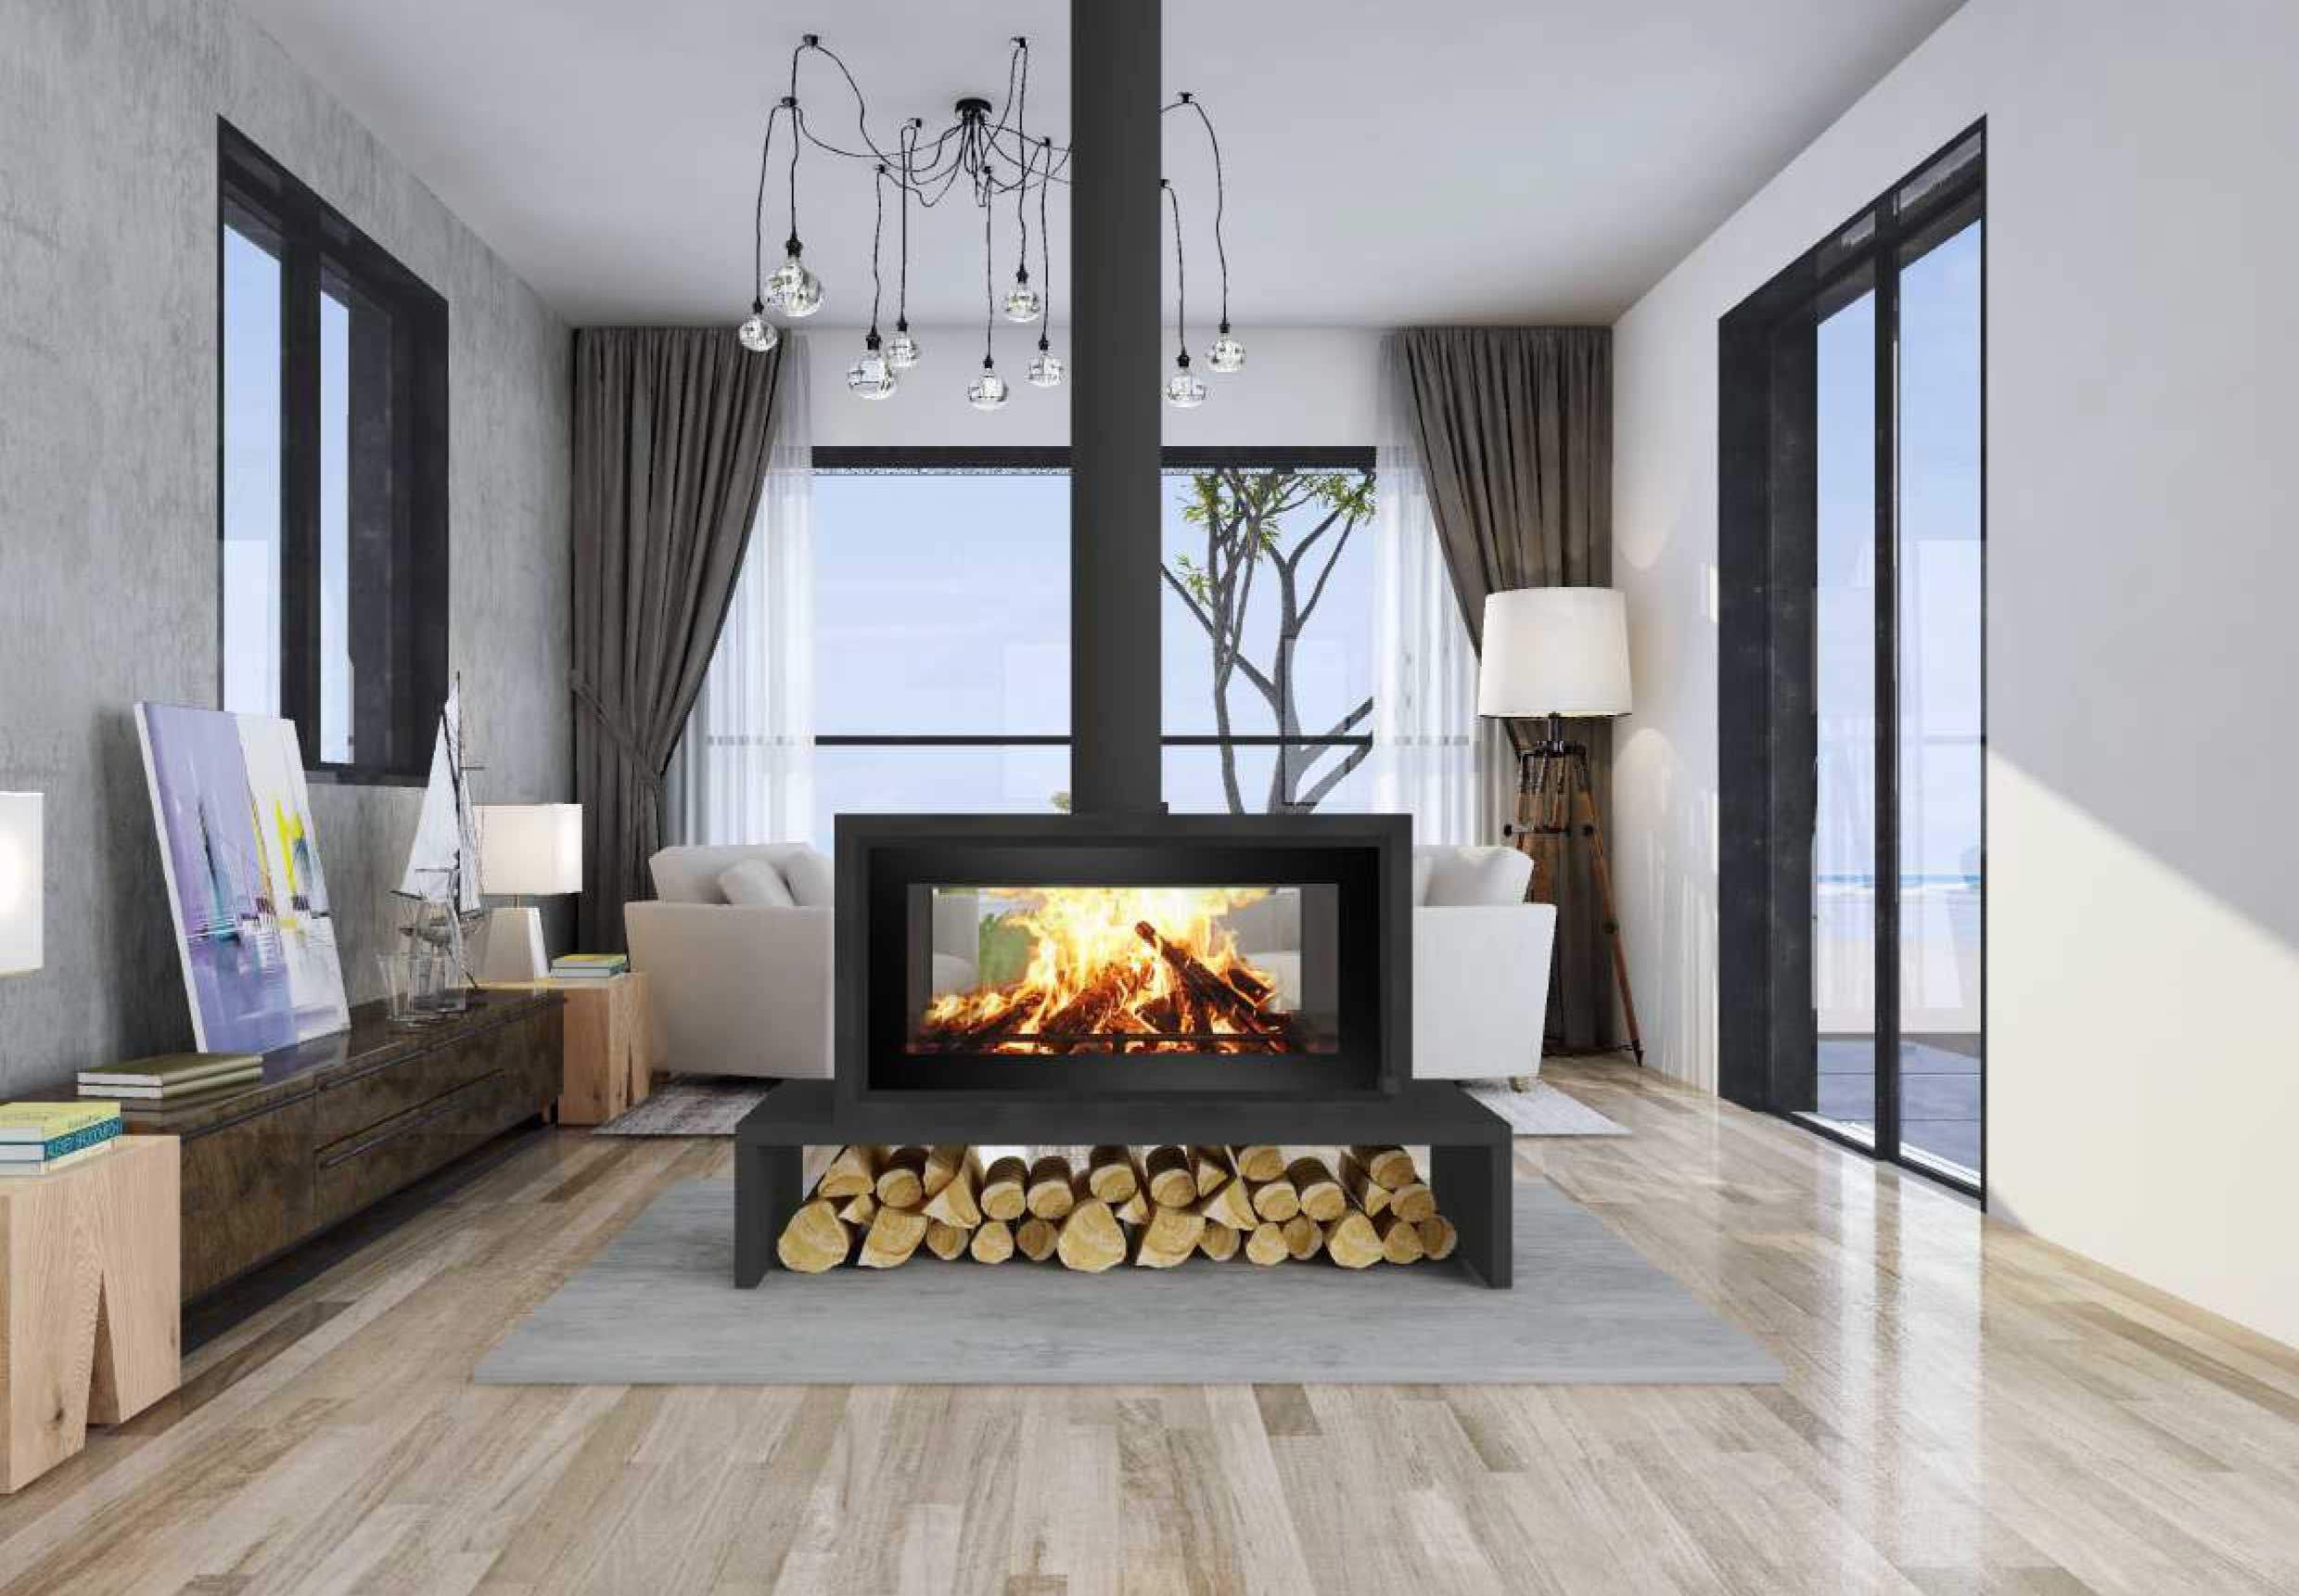 P11 Landscape Free Standing Double Sided Fireplace Cape Town Freestanding Fireplace Home Fireplace Cottage Fireplace